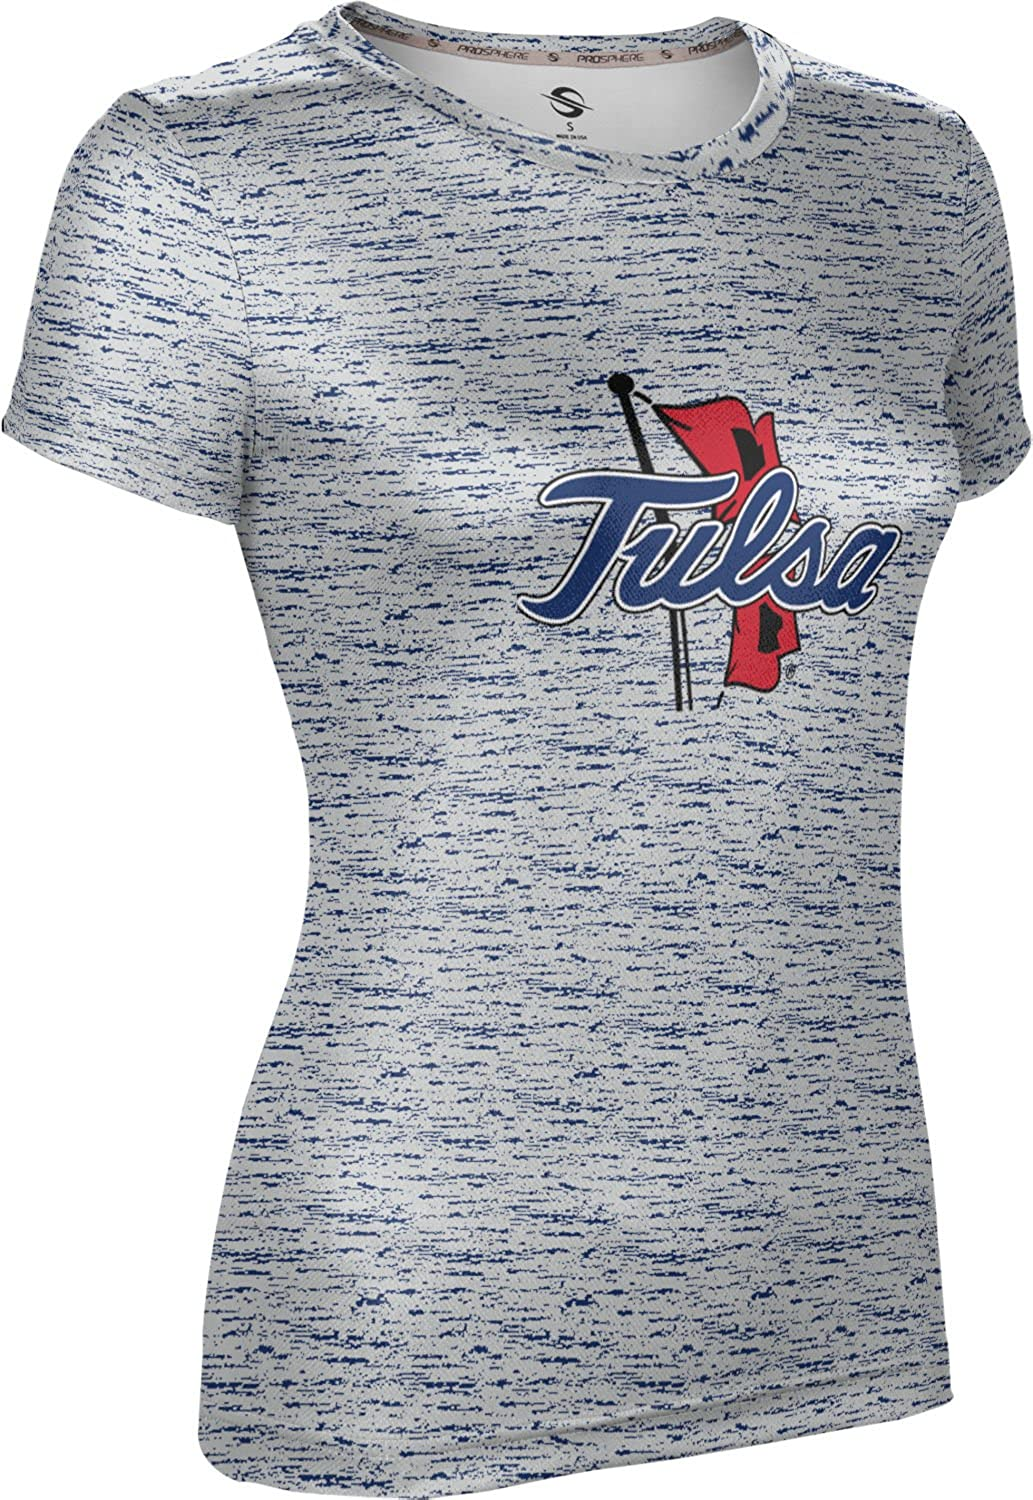 ProSphere University of Tulsa Girls Performance T-Shirt Brushed